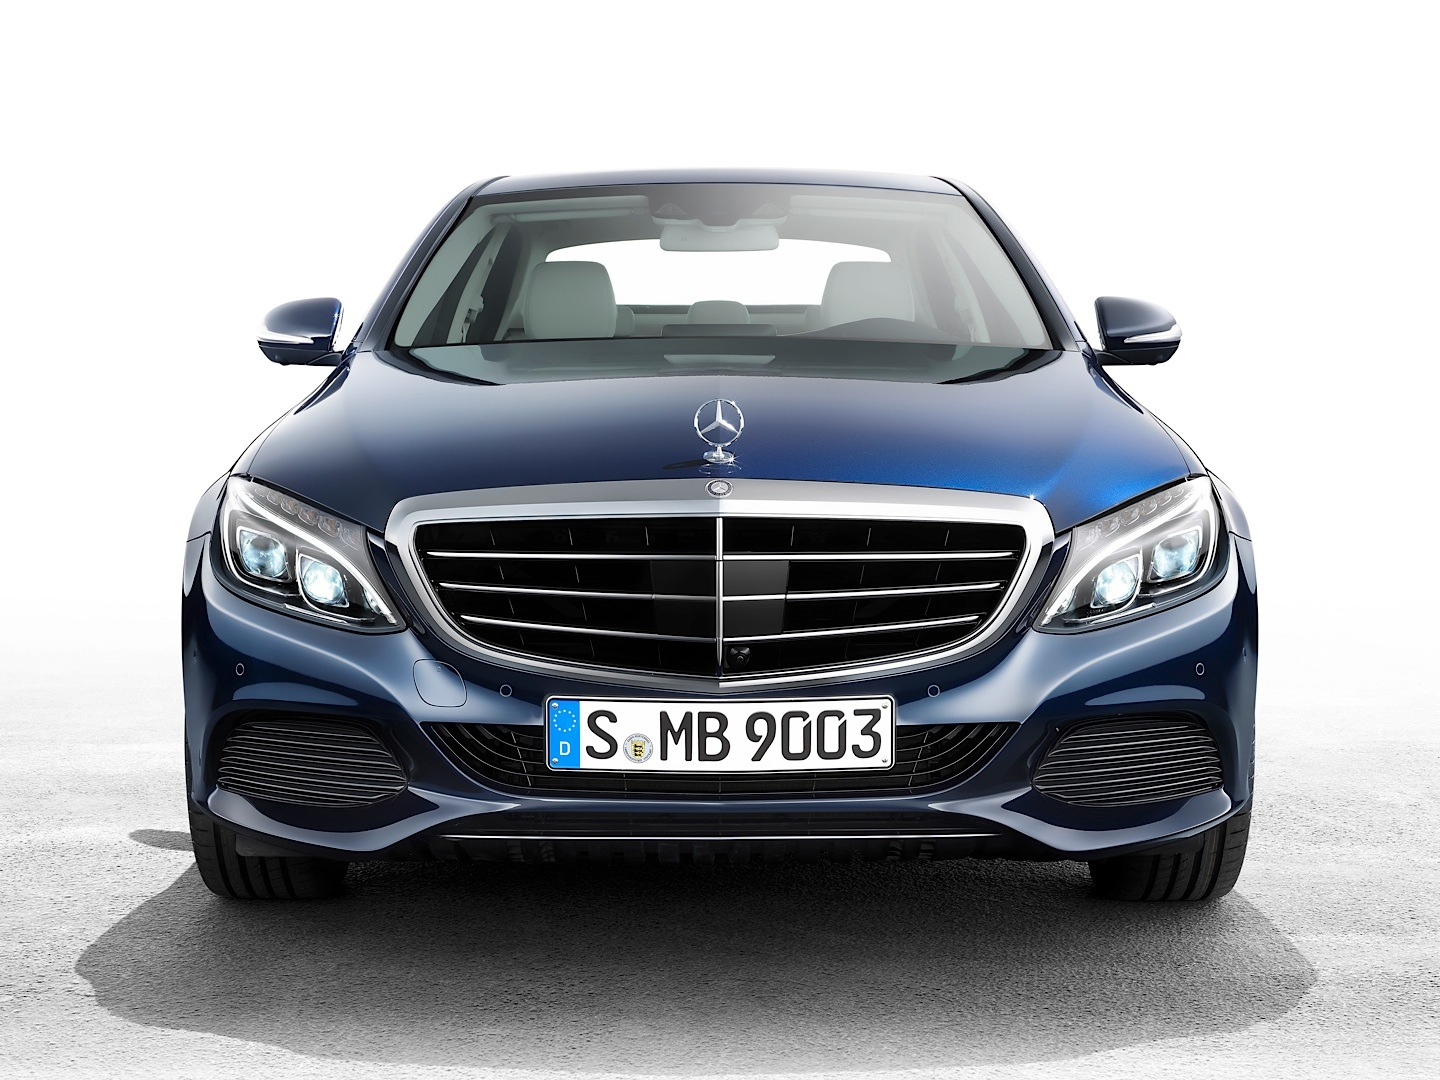 2015 mercedes benz c class sedan review msrp mpg for Mercedes benz a class price